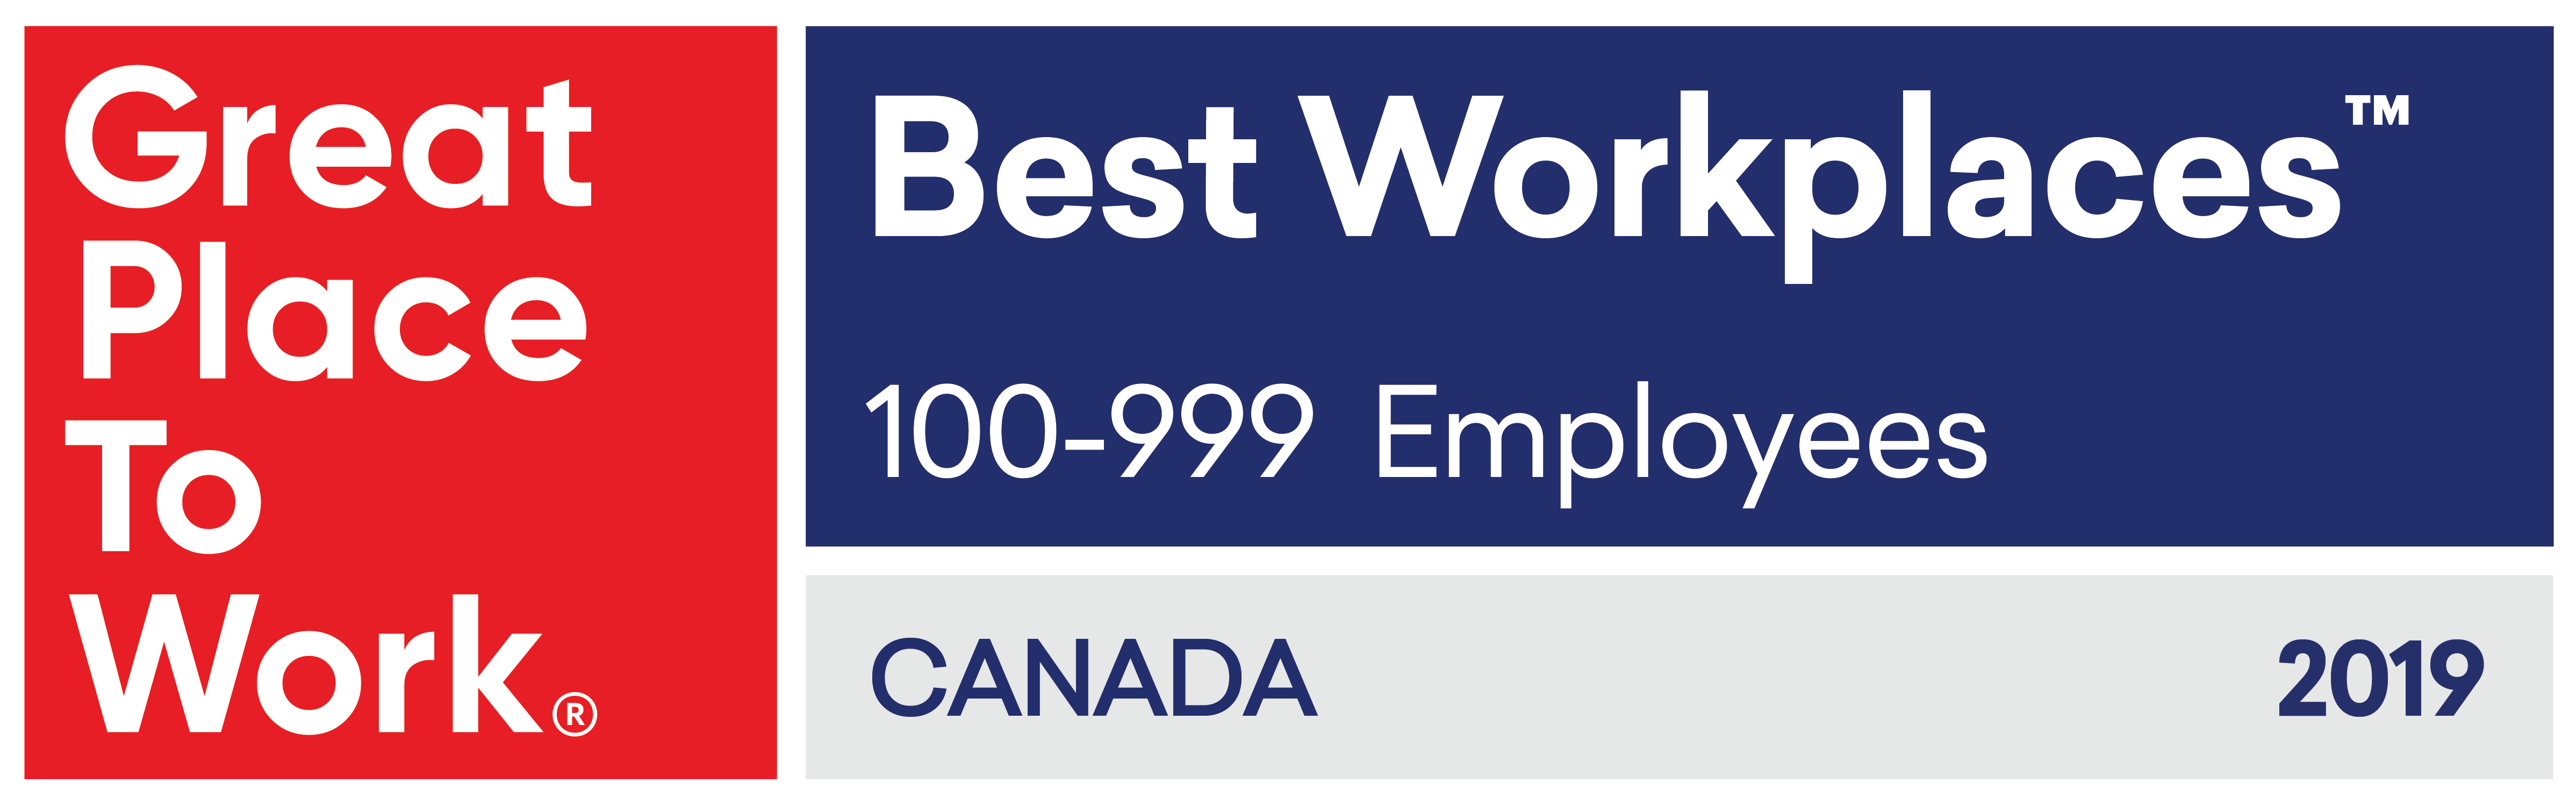 src is a best workplace as awarded by great place to work